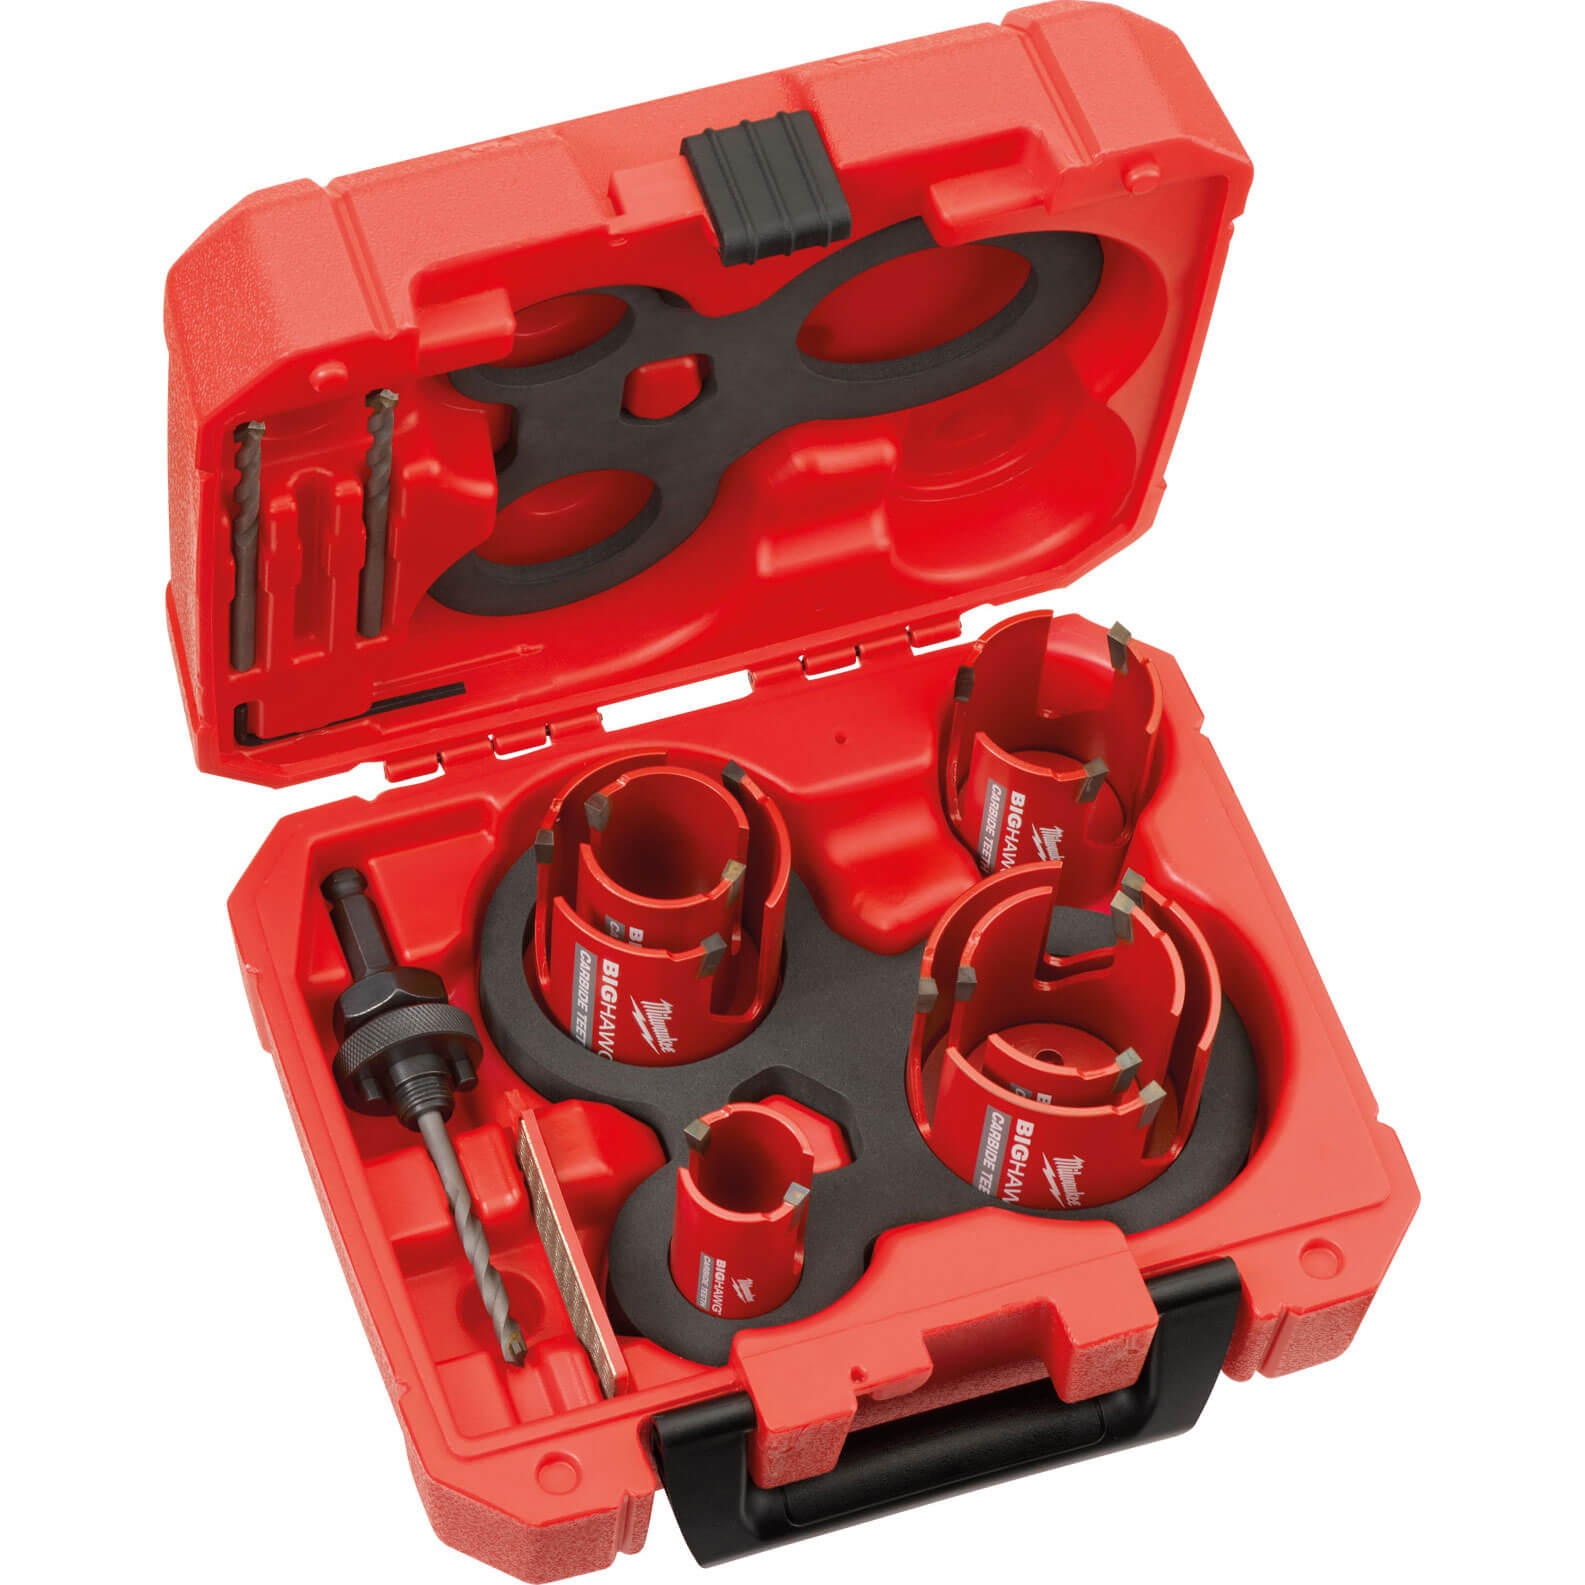 Image of Milwaukee 10 Piece Big Hawg Multi Material Hole Saw Set